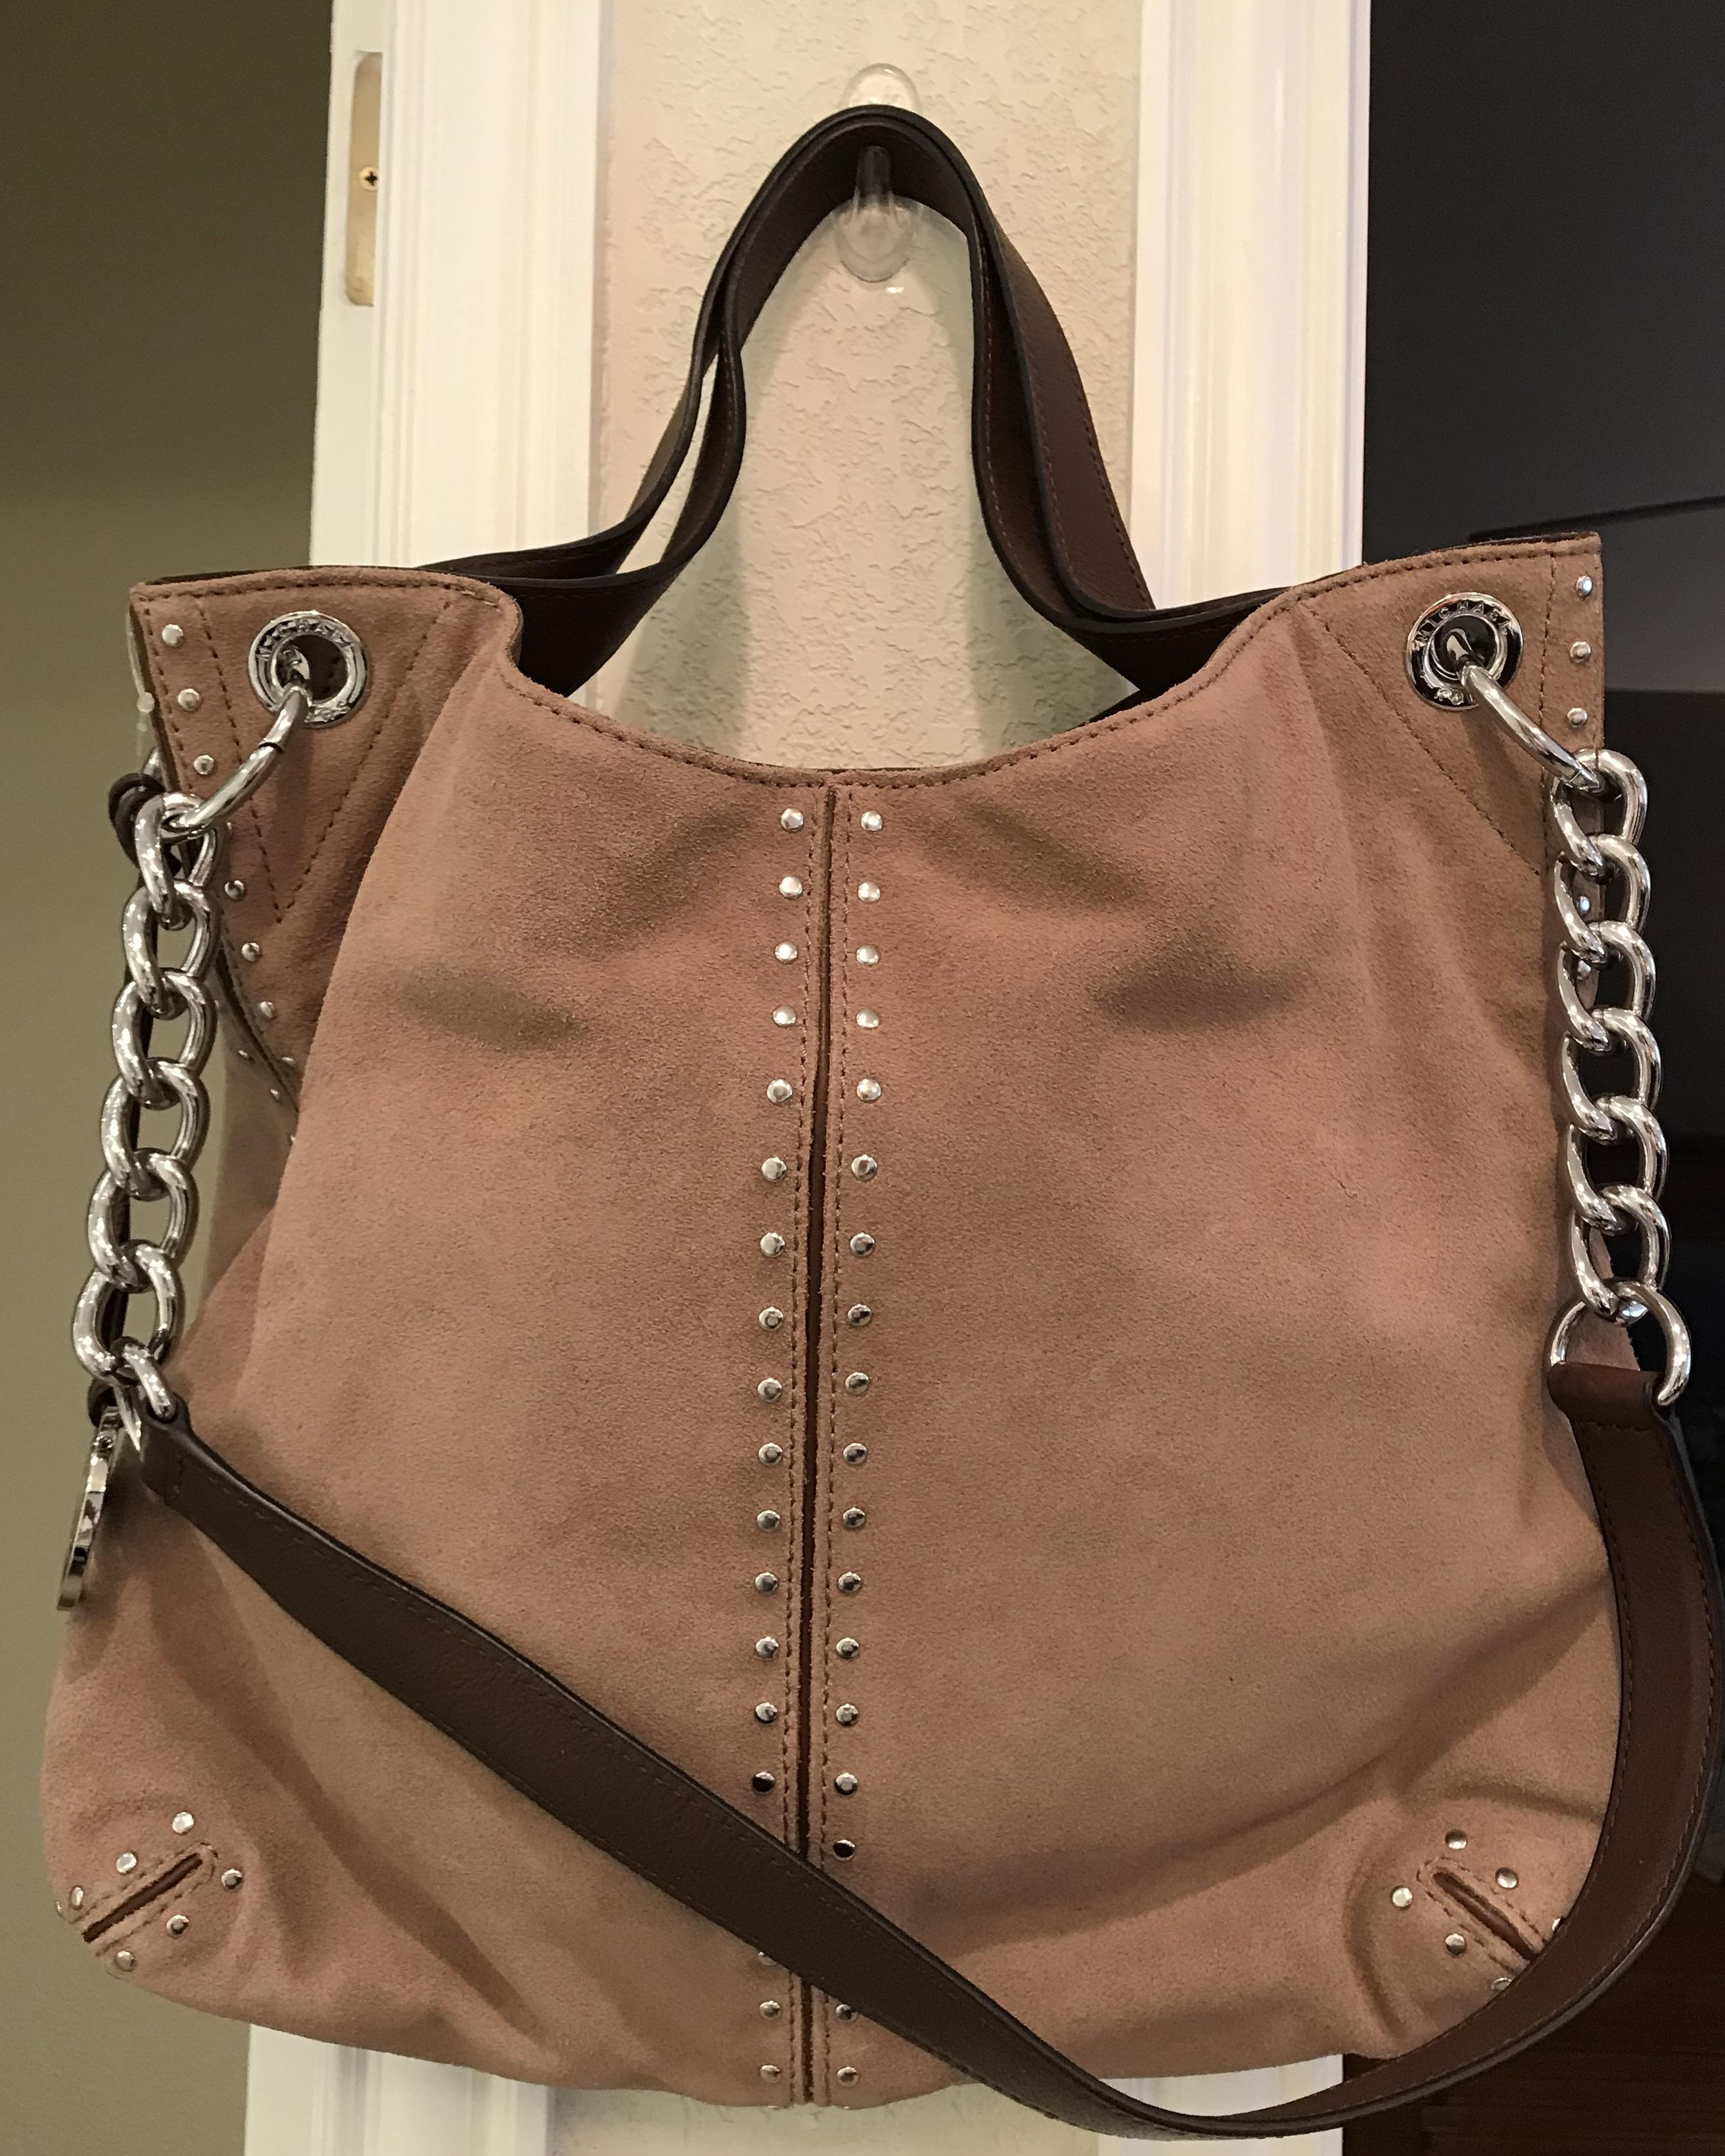 f48f6d6b42a5f2 coupon for michael kors shoulder chain studs stud tote in rare dusk dune  khaki brown.